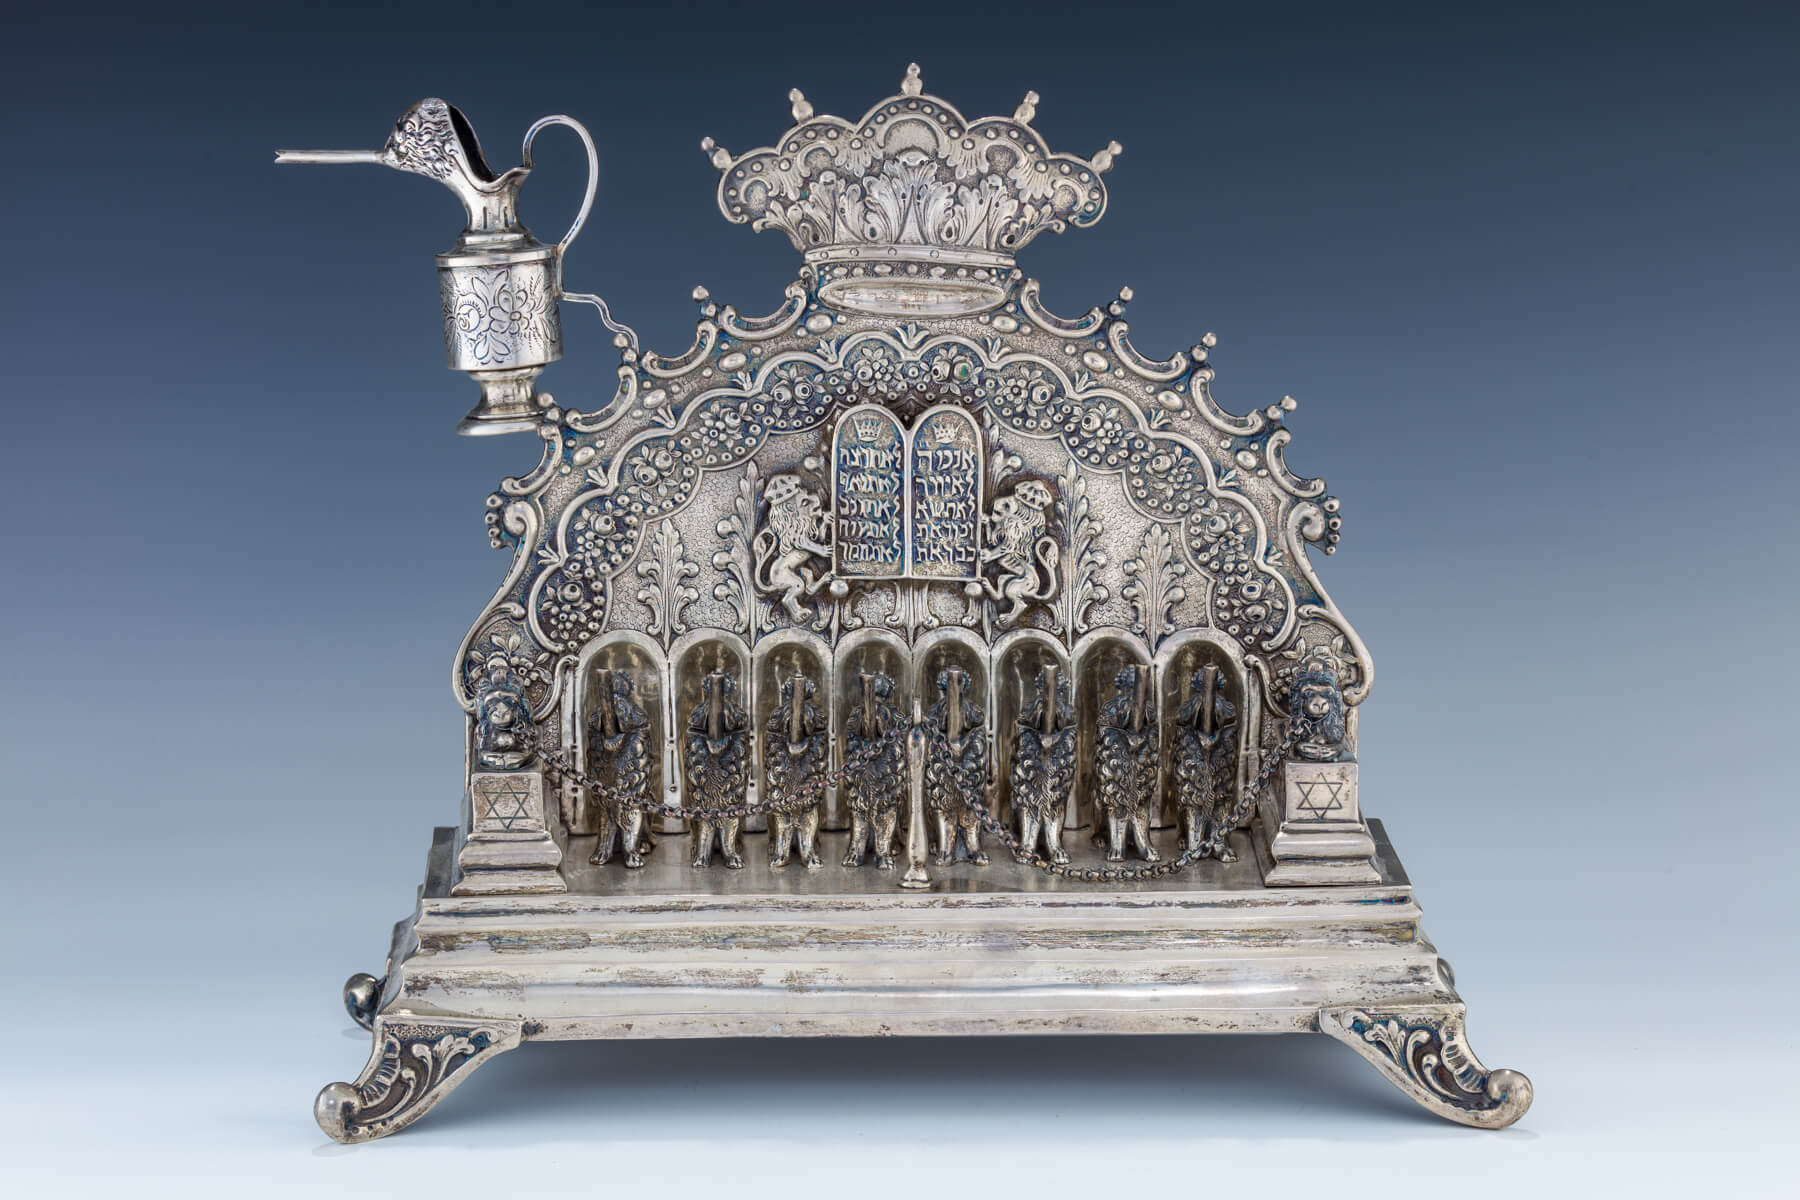 21. A Large Silver Chanukah Lamp